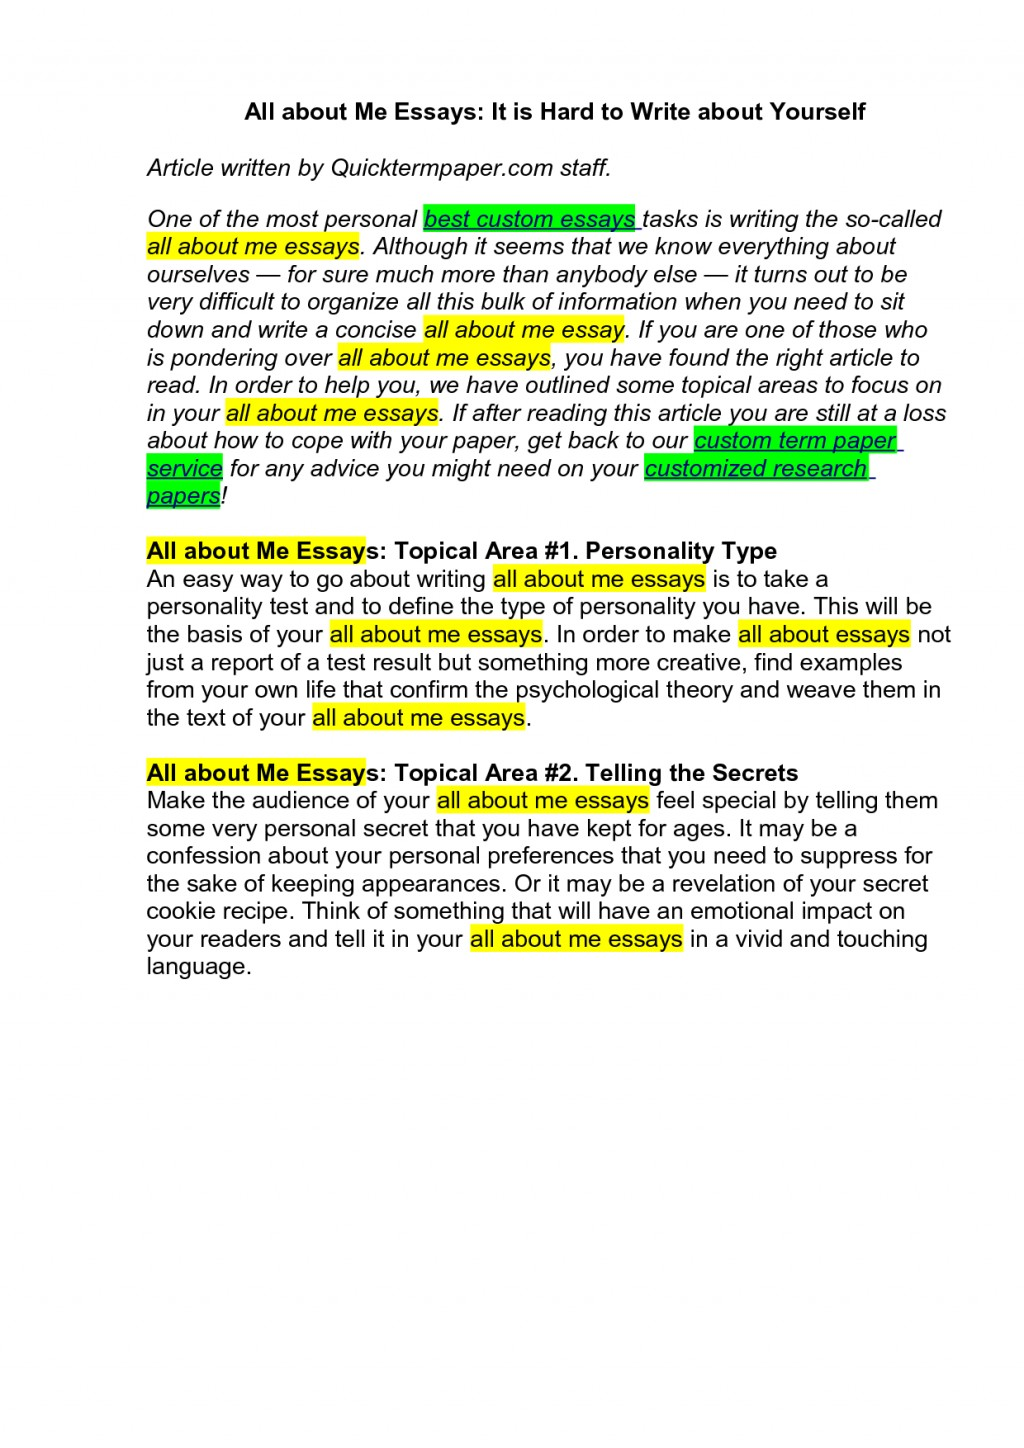 021 Essay Example How To Start An Amazing Bad With A Question Ways Definition Large